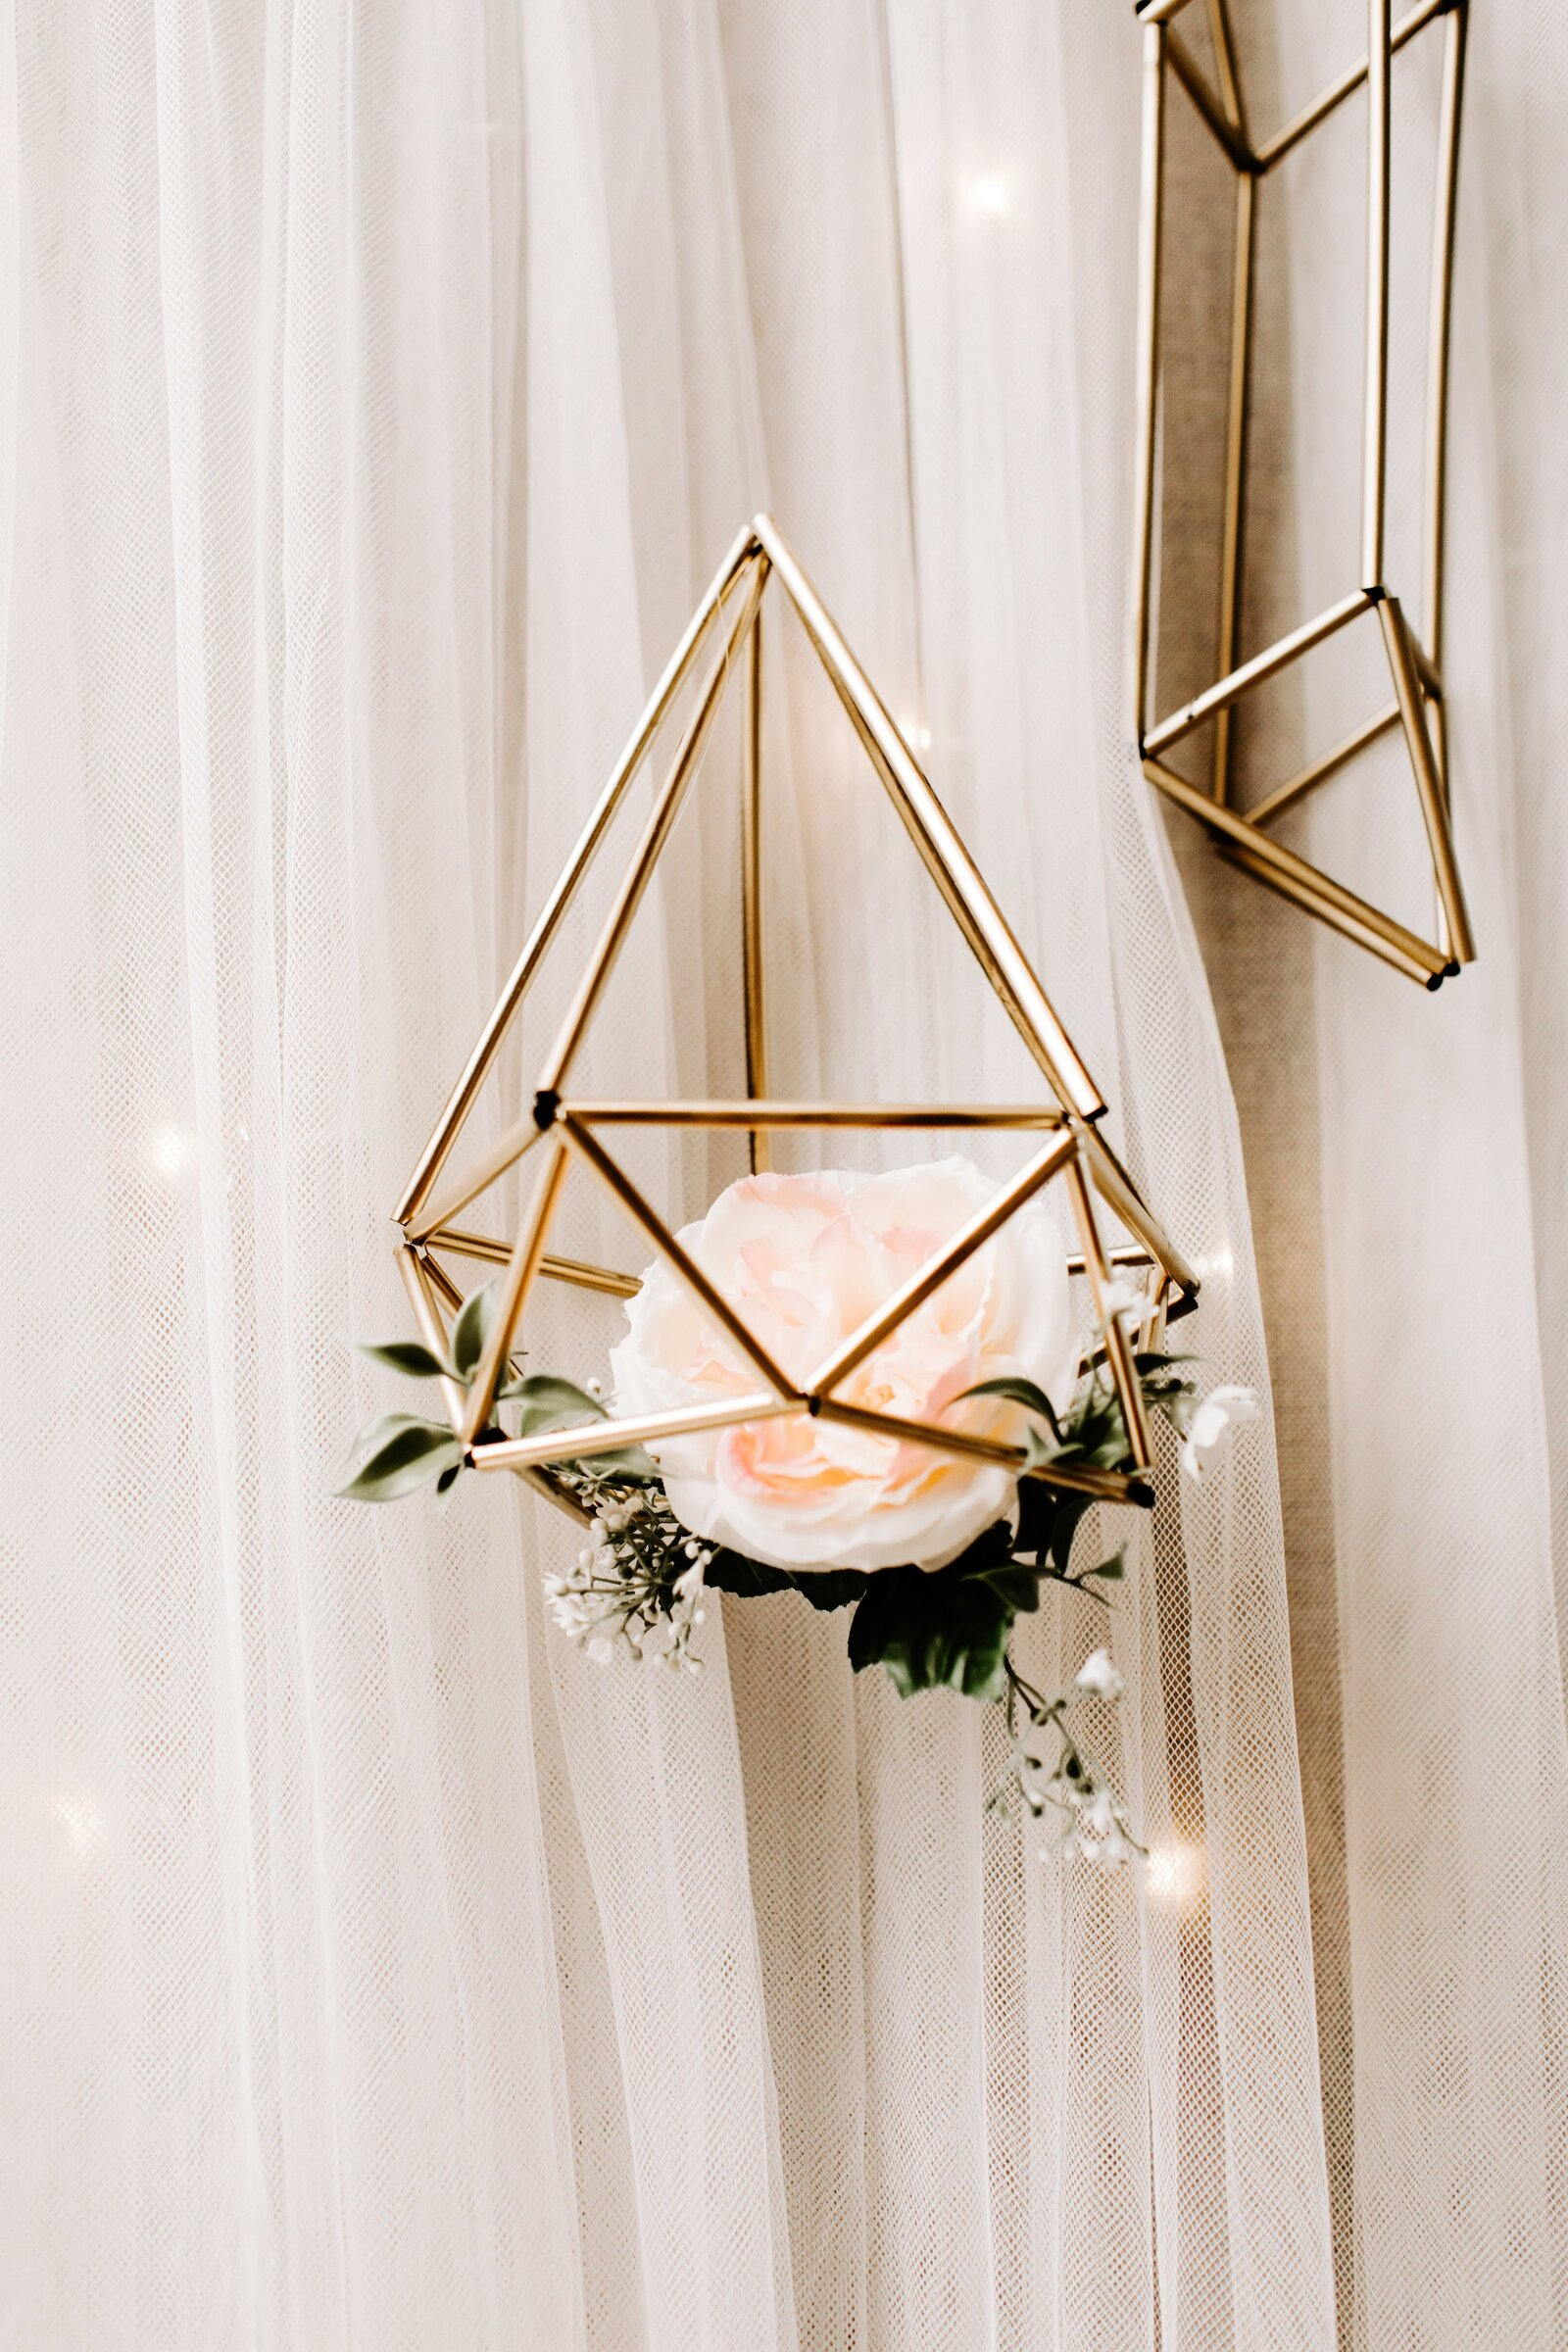 Decorative-Gold-Geometric-Floral-Holder